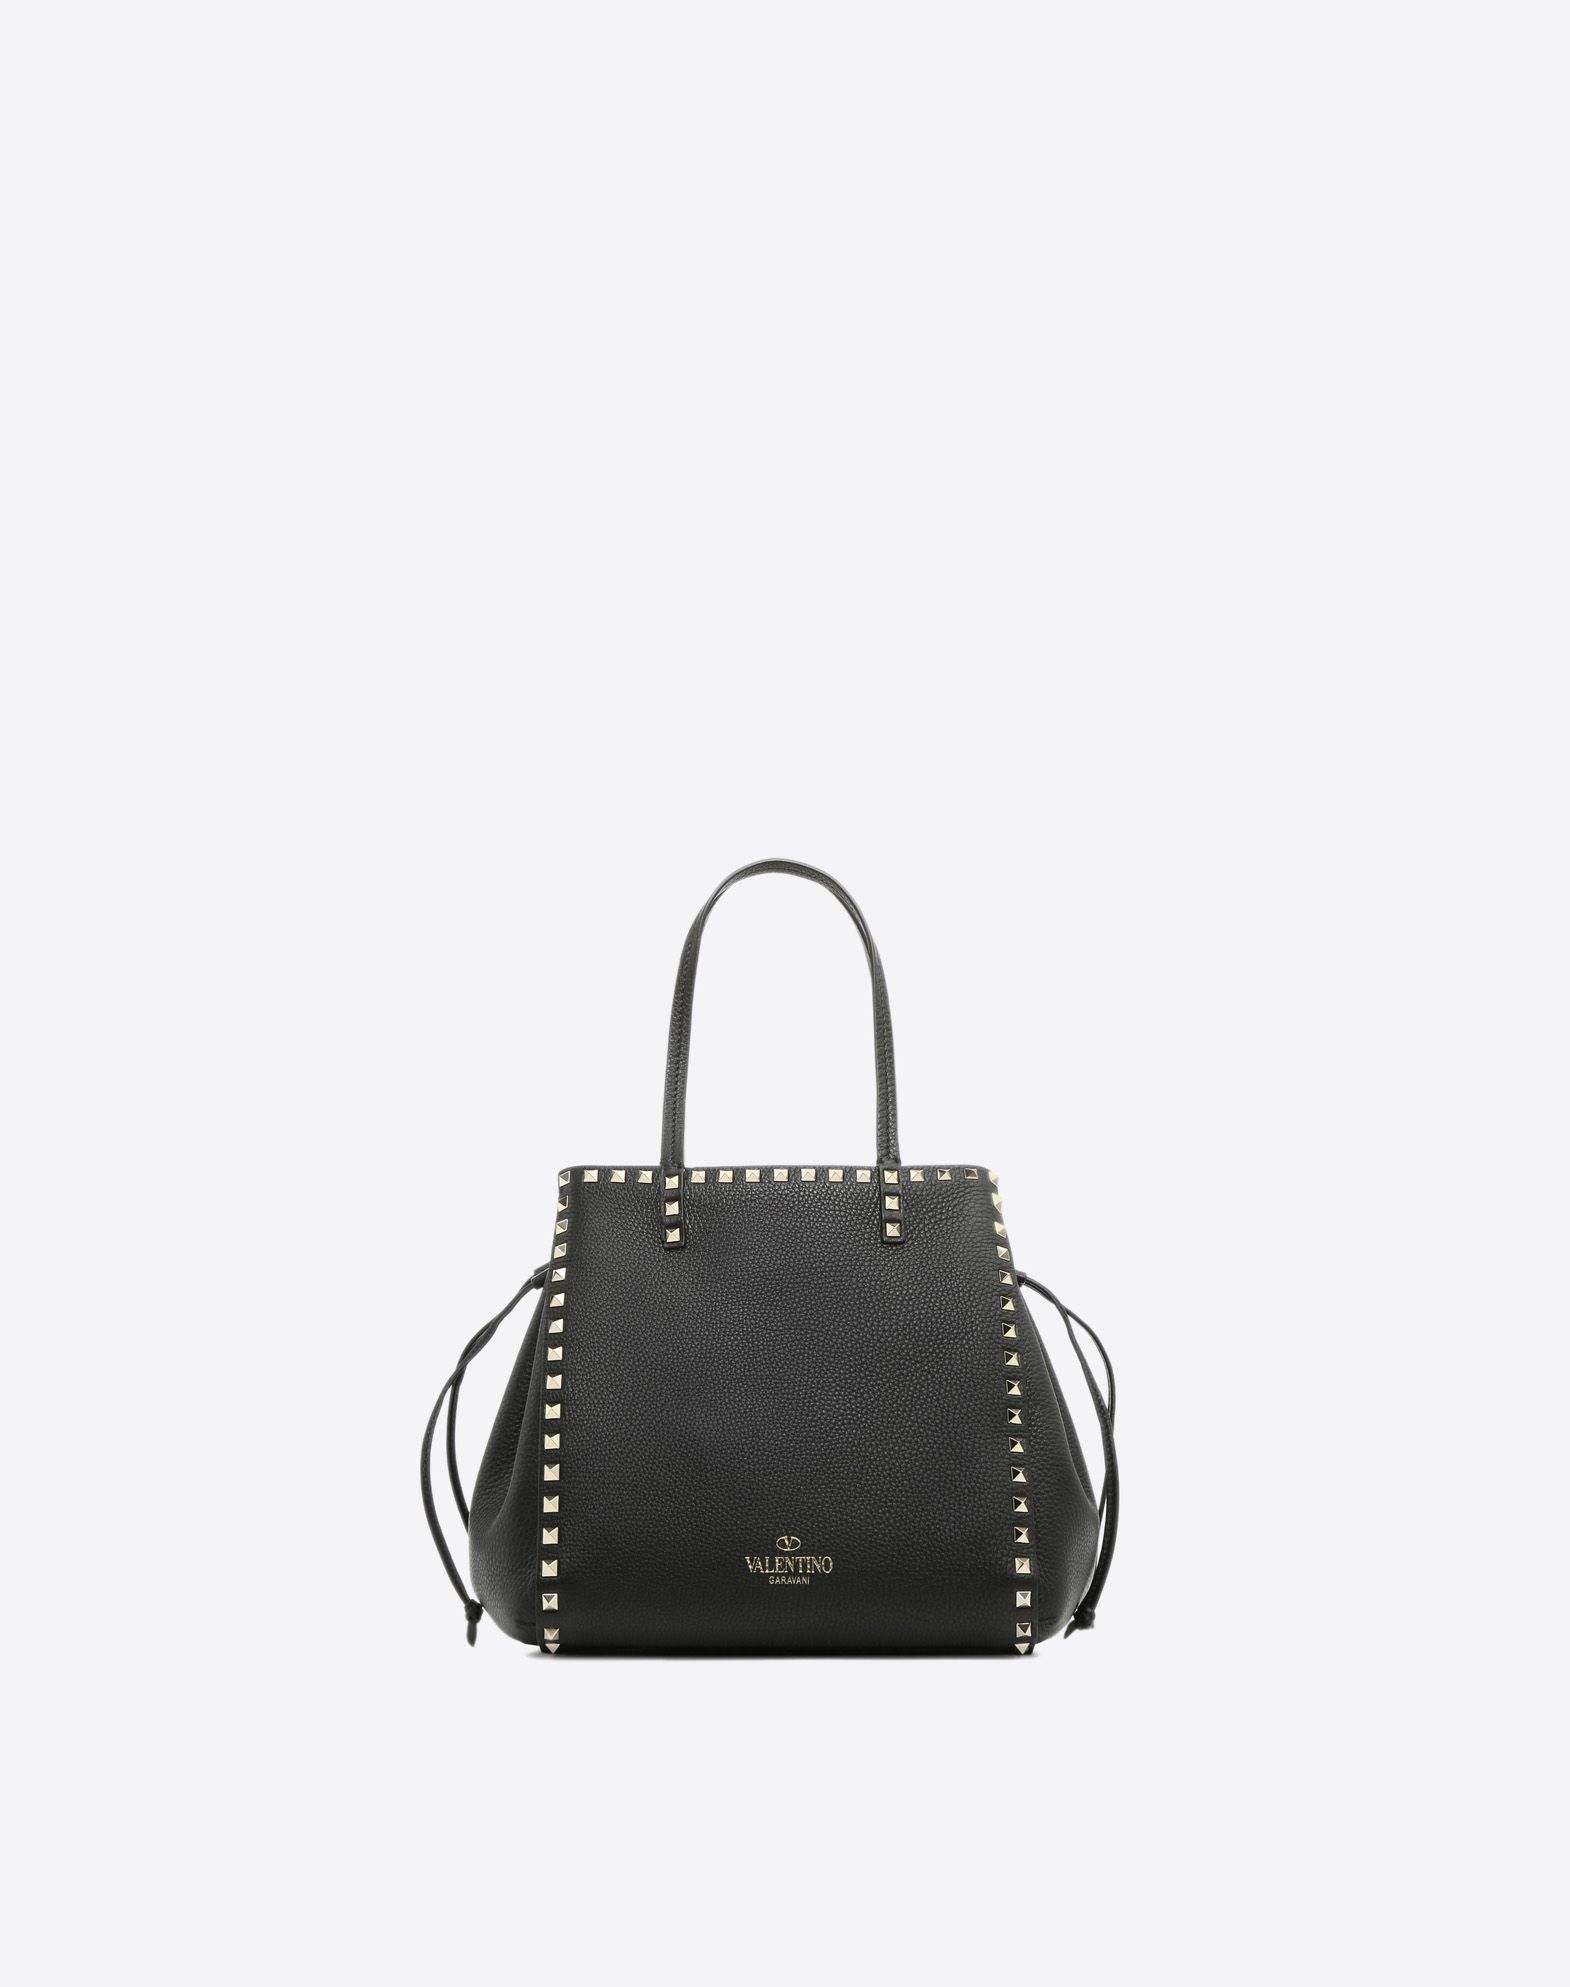 VALENTINO GARAVANI Rockstud Double Handle Bag HANDBAG D d